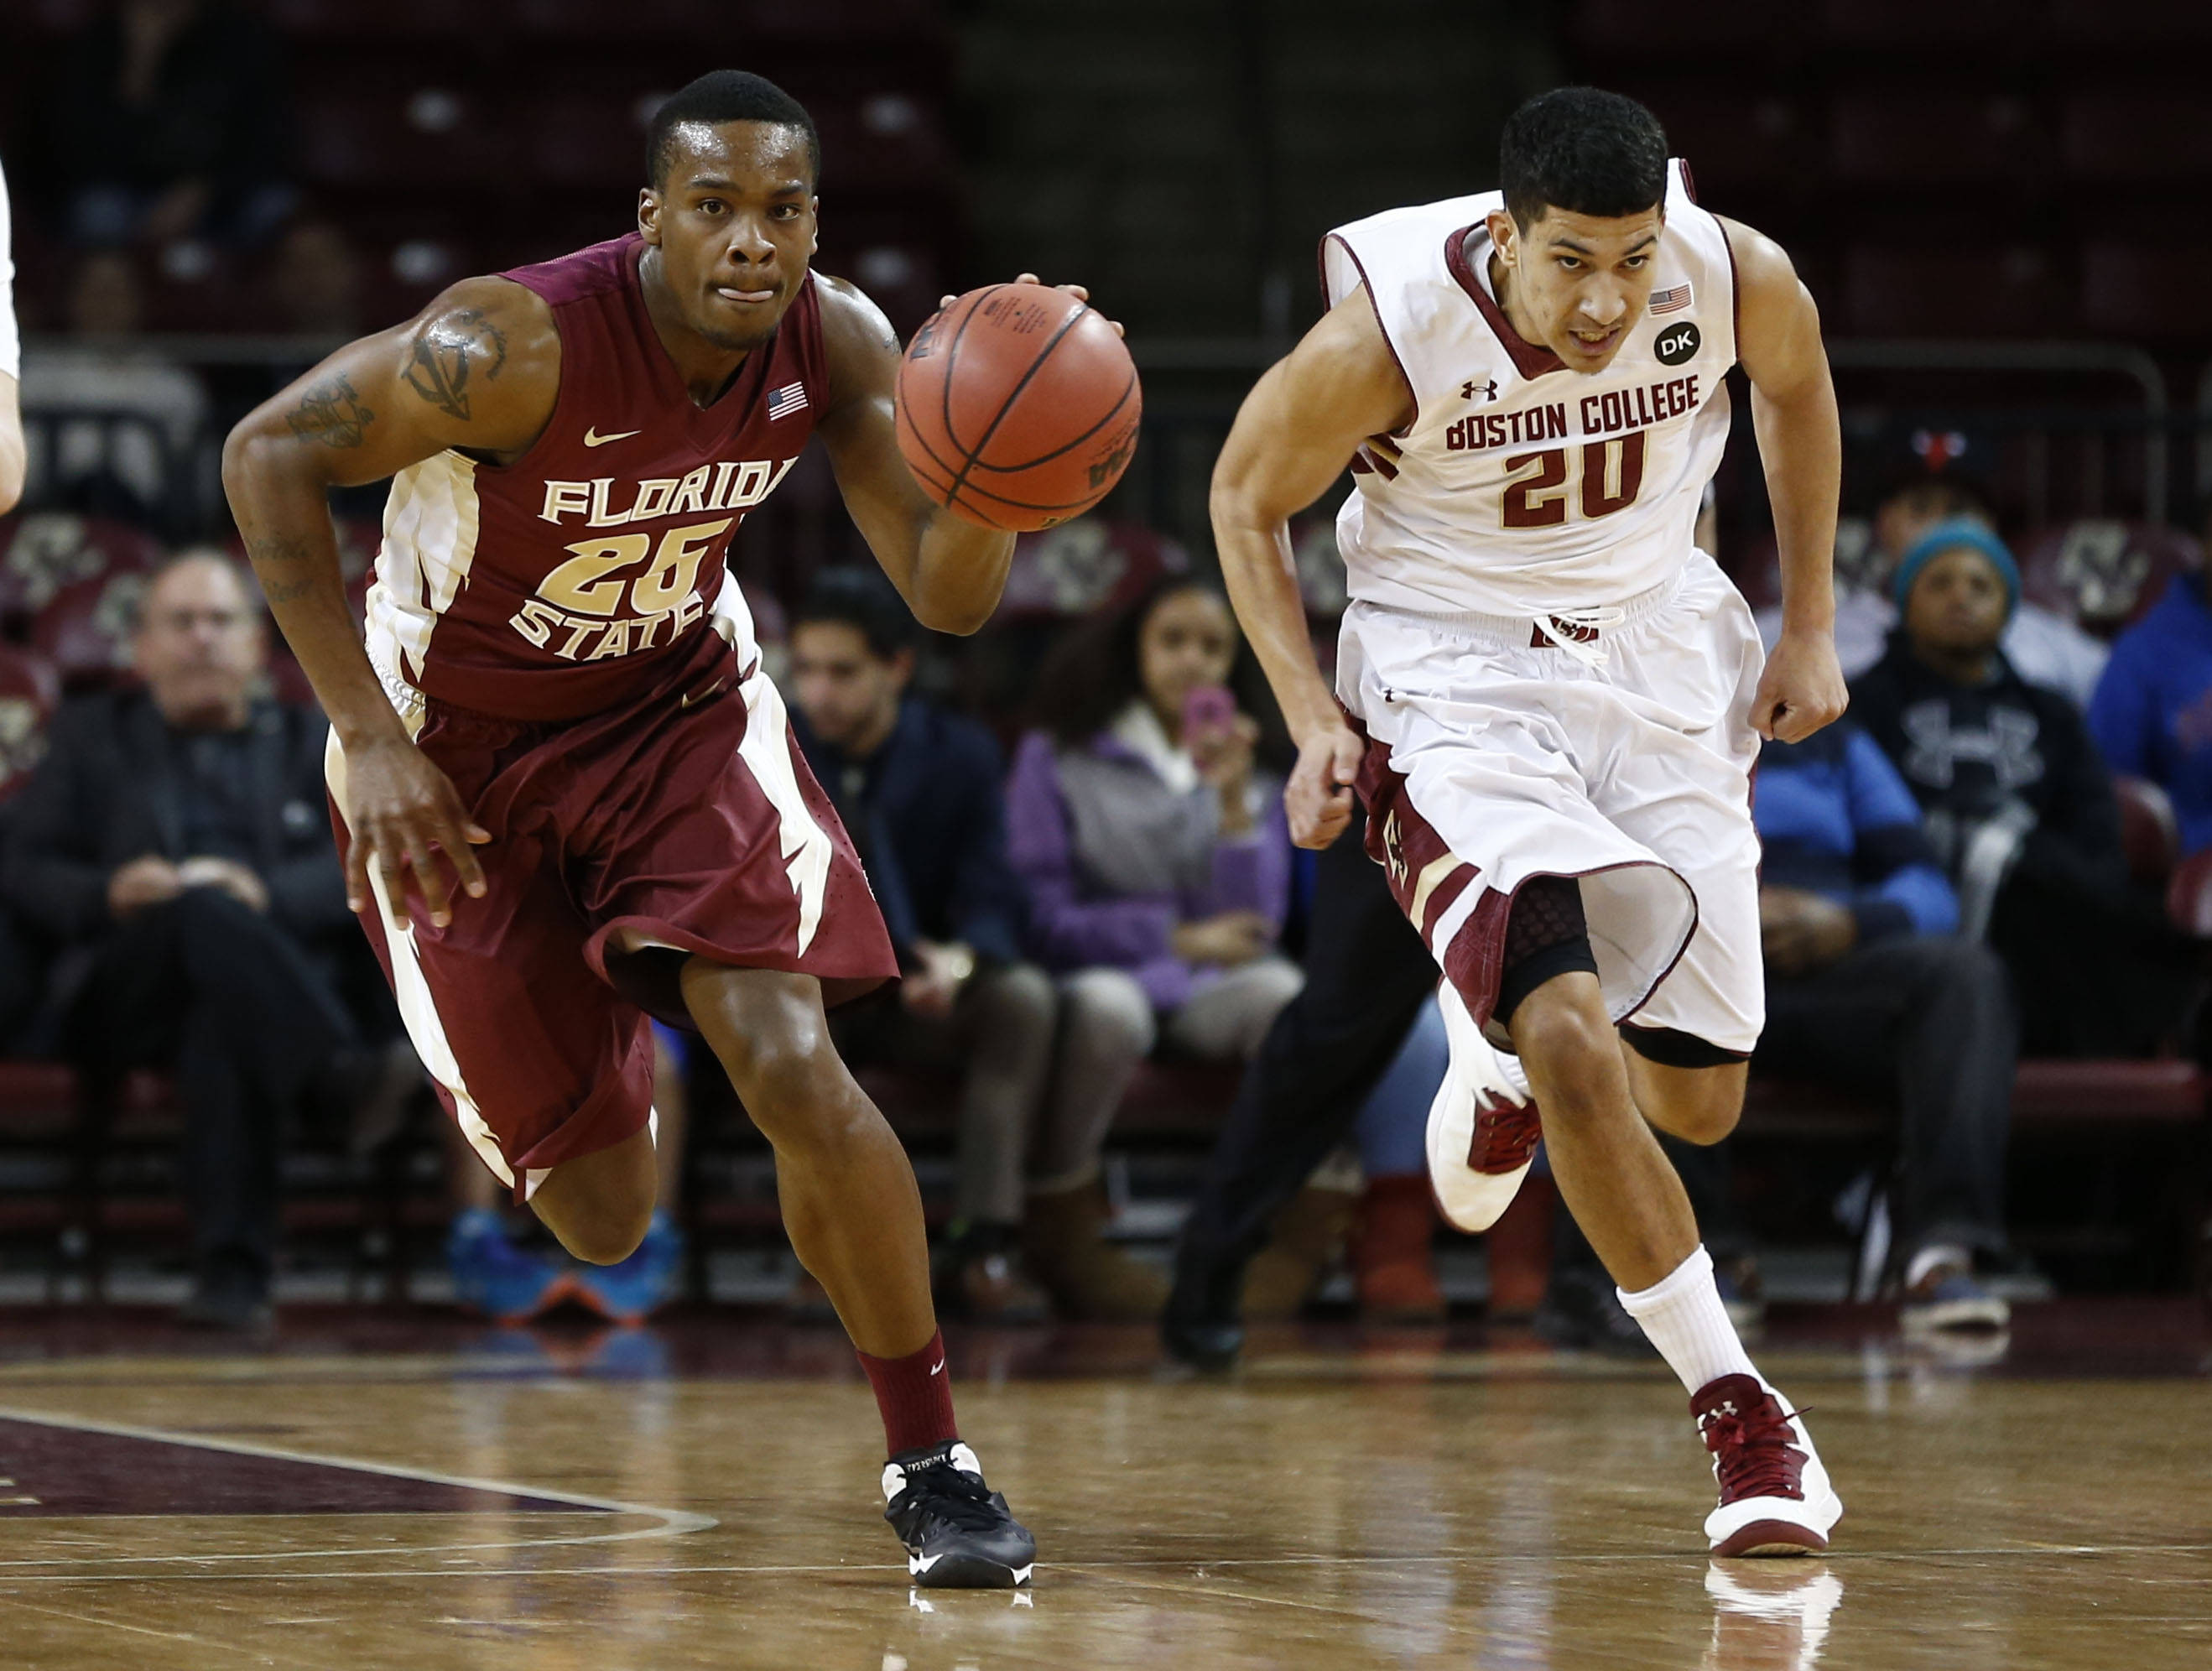 Mar 4, 2014; Chestnut Hill, MA, USA; Seminoles guard Aaron Thomas (25) dribbles the ball against Boston College Eagles guard Lonnie Jackson (20) during the first half. Mark L. Baer-USA TODAY Sports